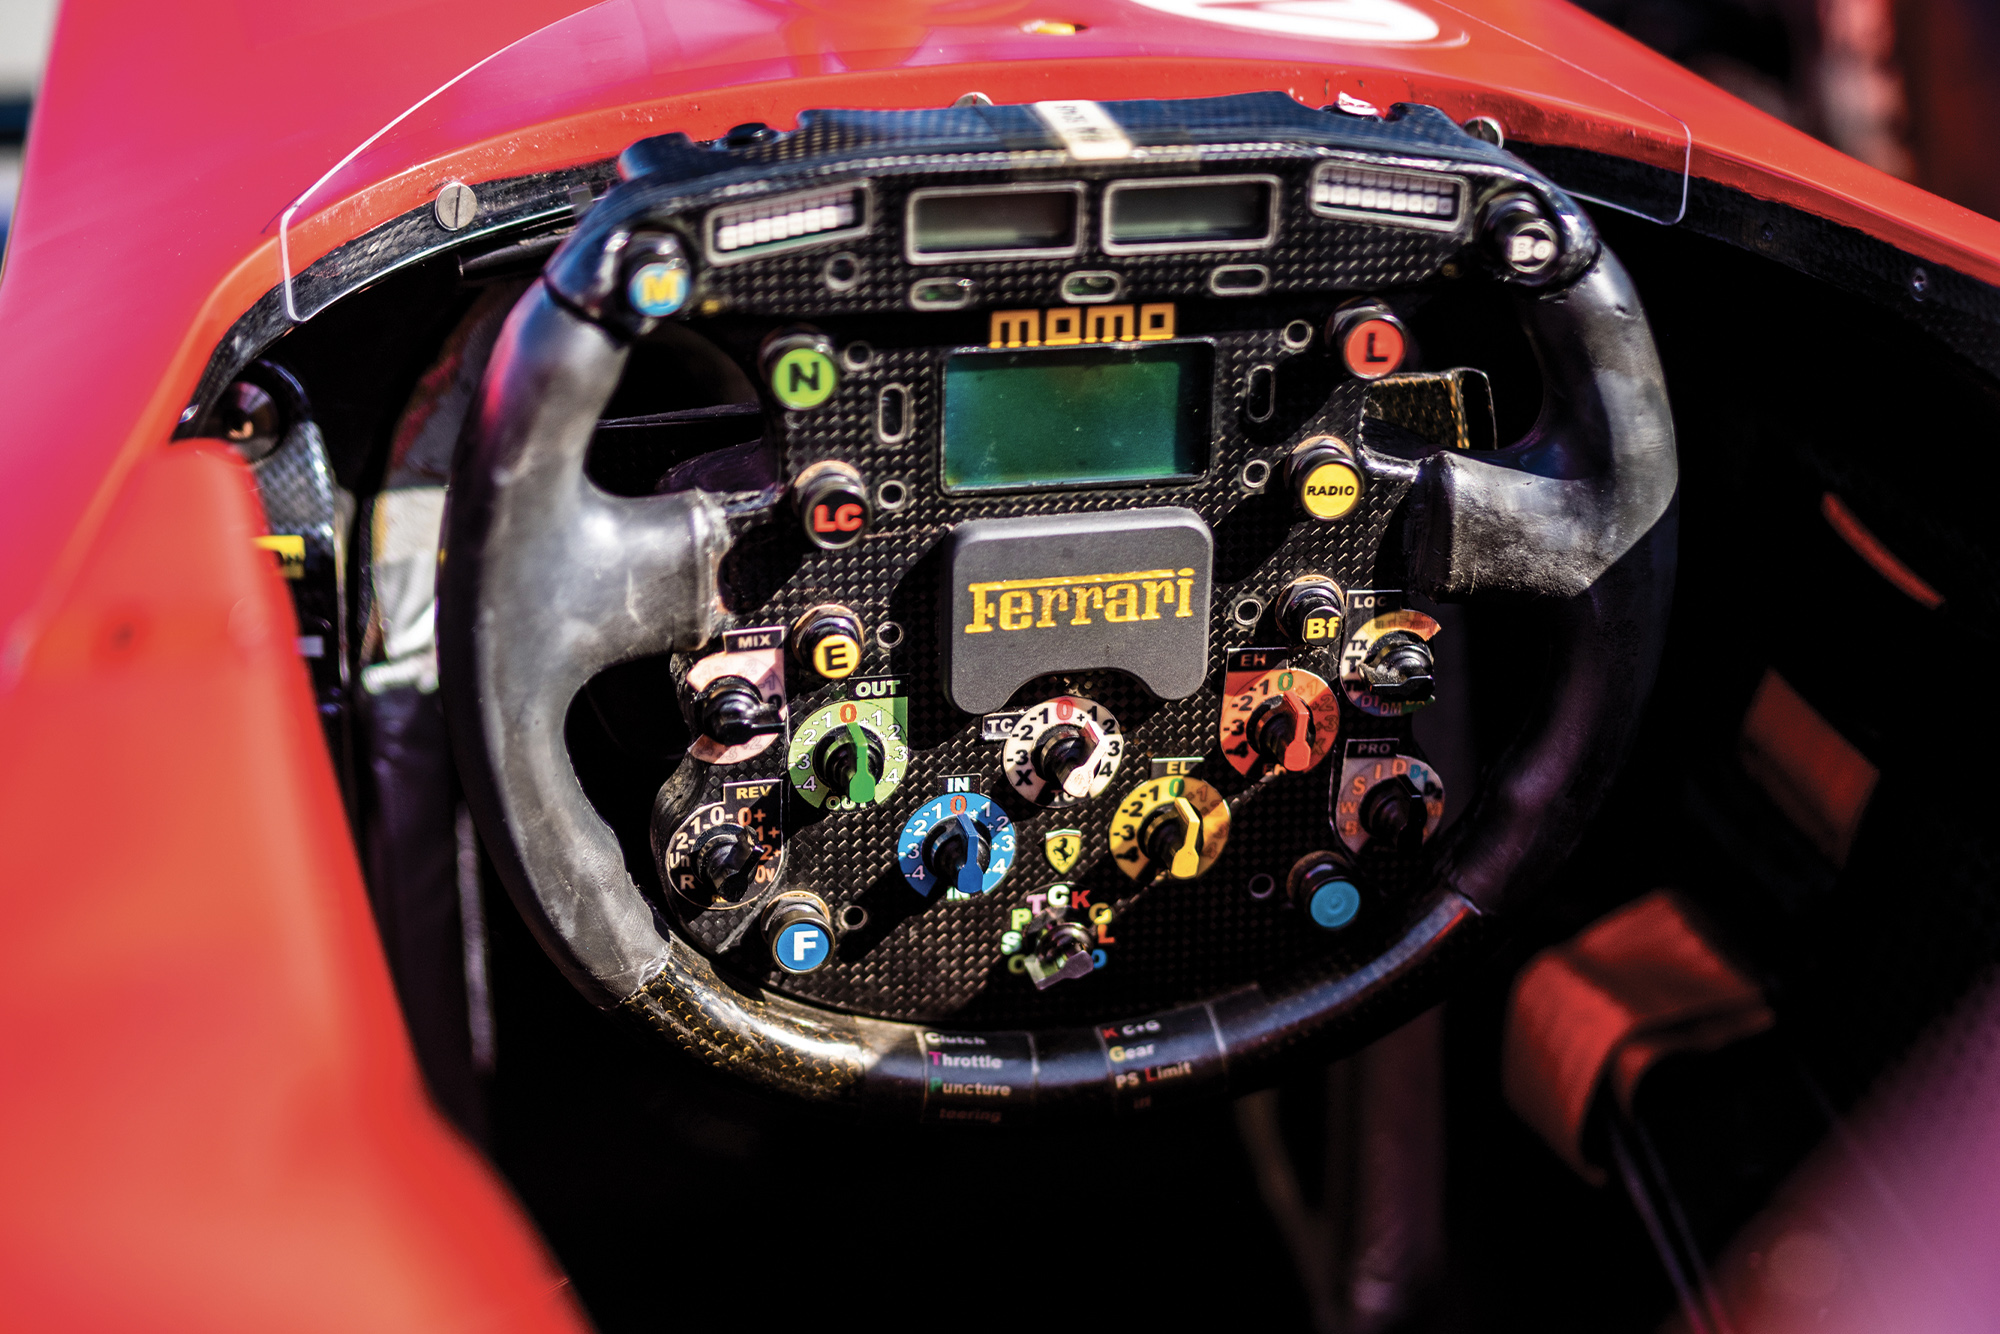 Michael Schumacher's Ferrari F2002 for auction cockpit